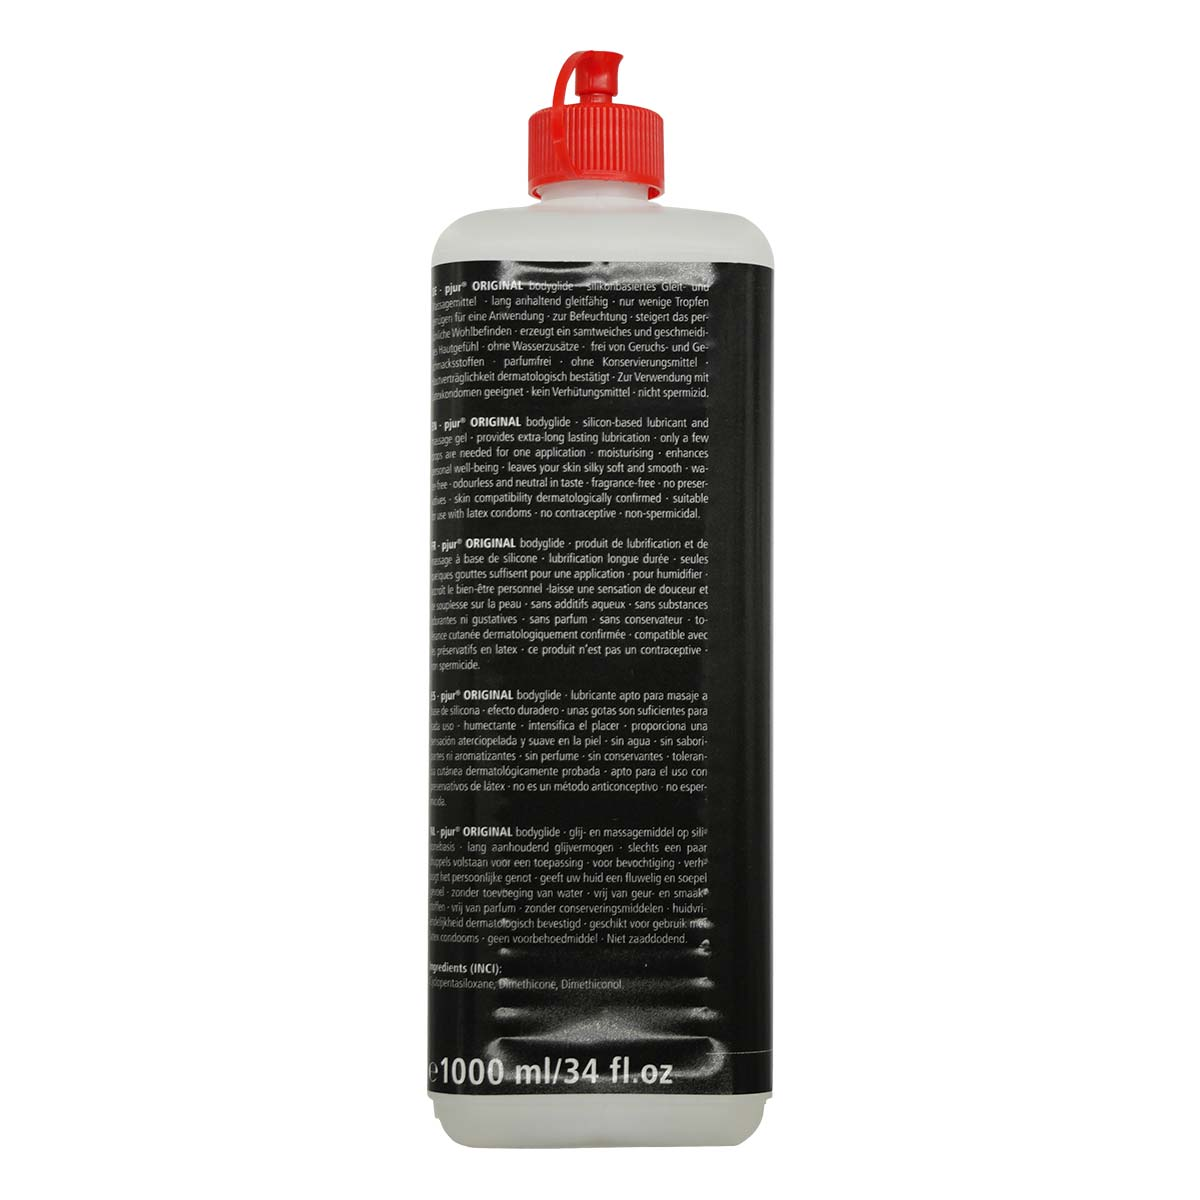 pjur ORIGINAL 1000ml Silicone-based Lubricant - International Edition